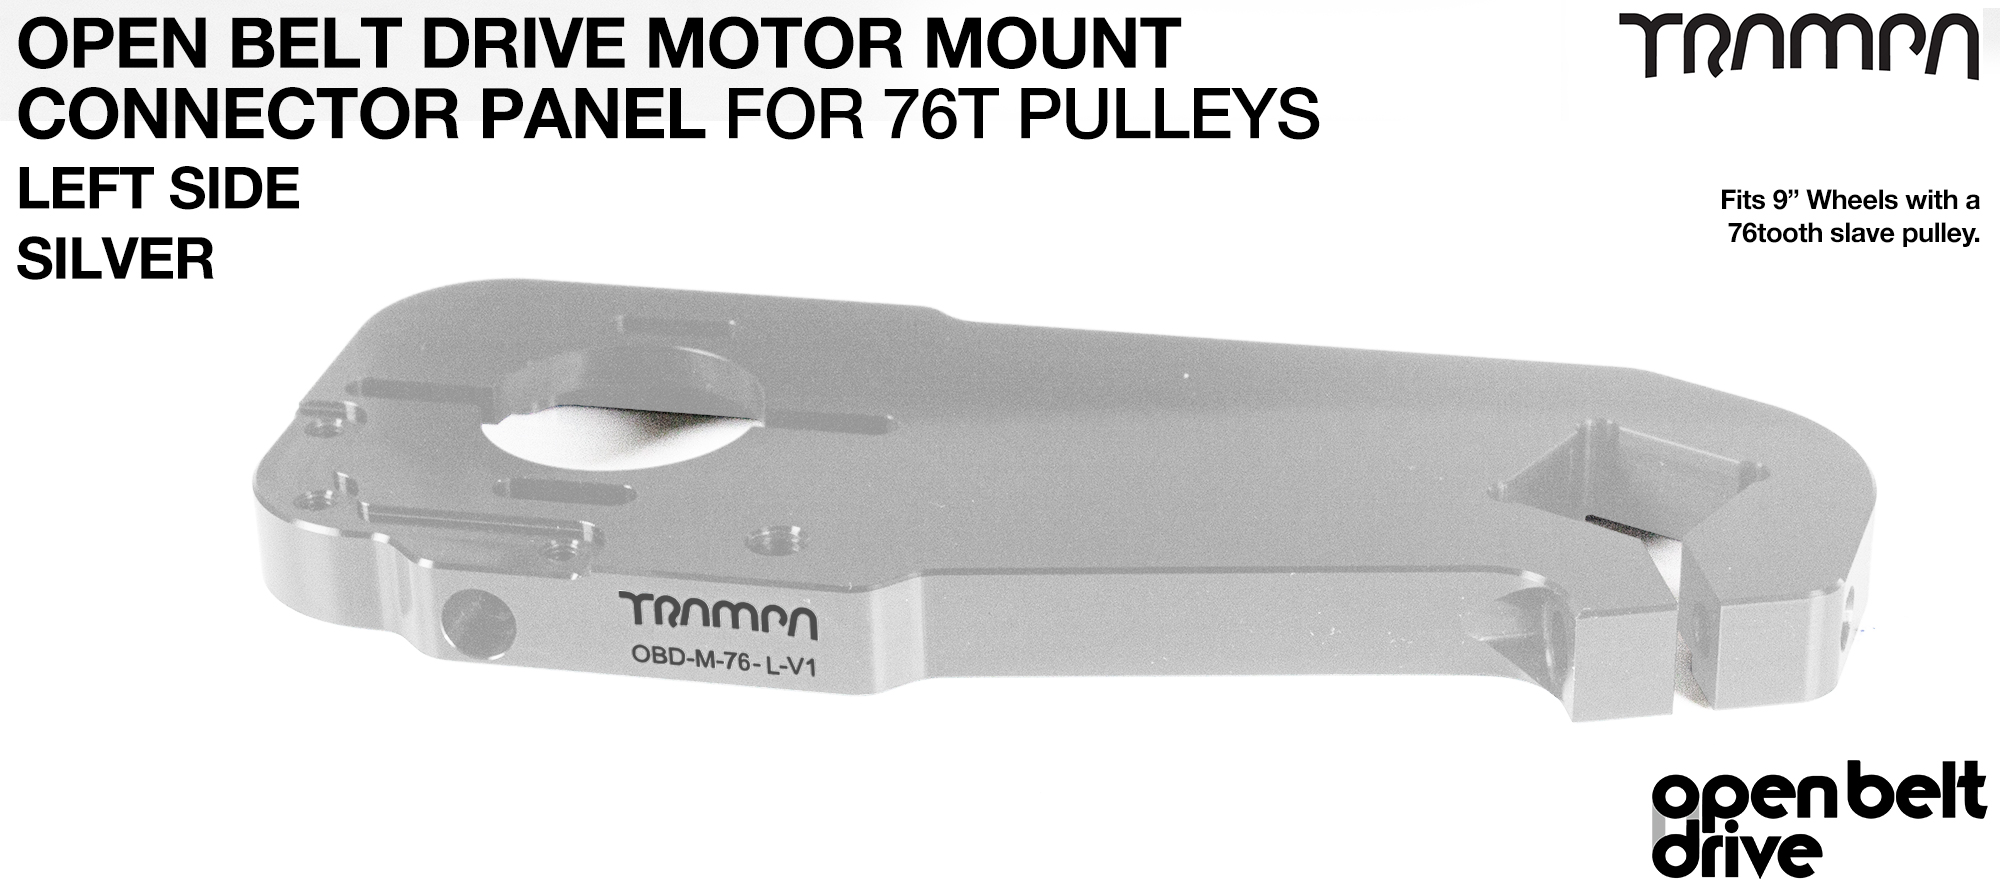 OBD Motor Mount Connector Panel for 76 tooth pulleys - REGULAR - SILVER